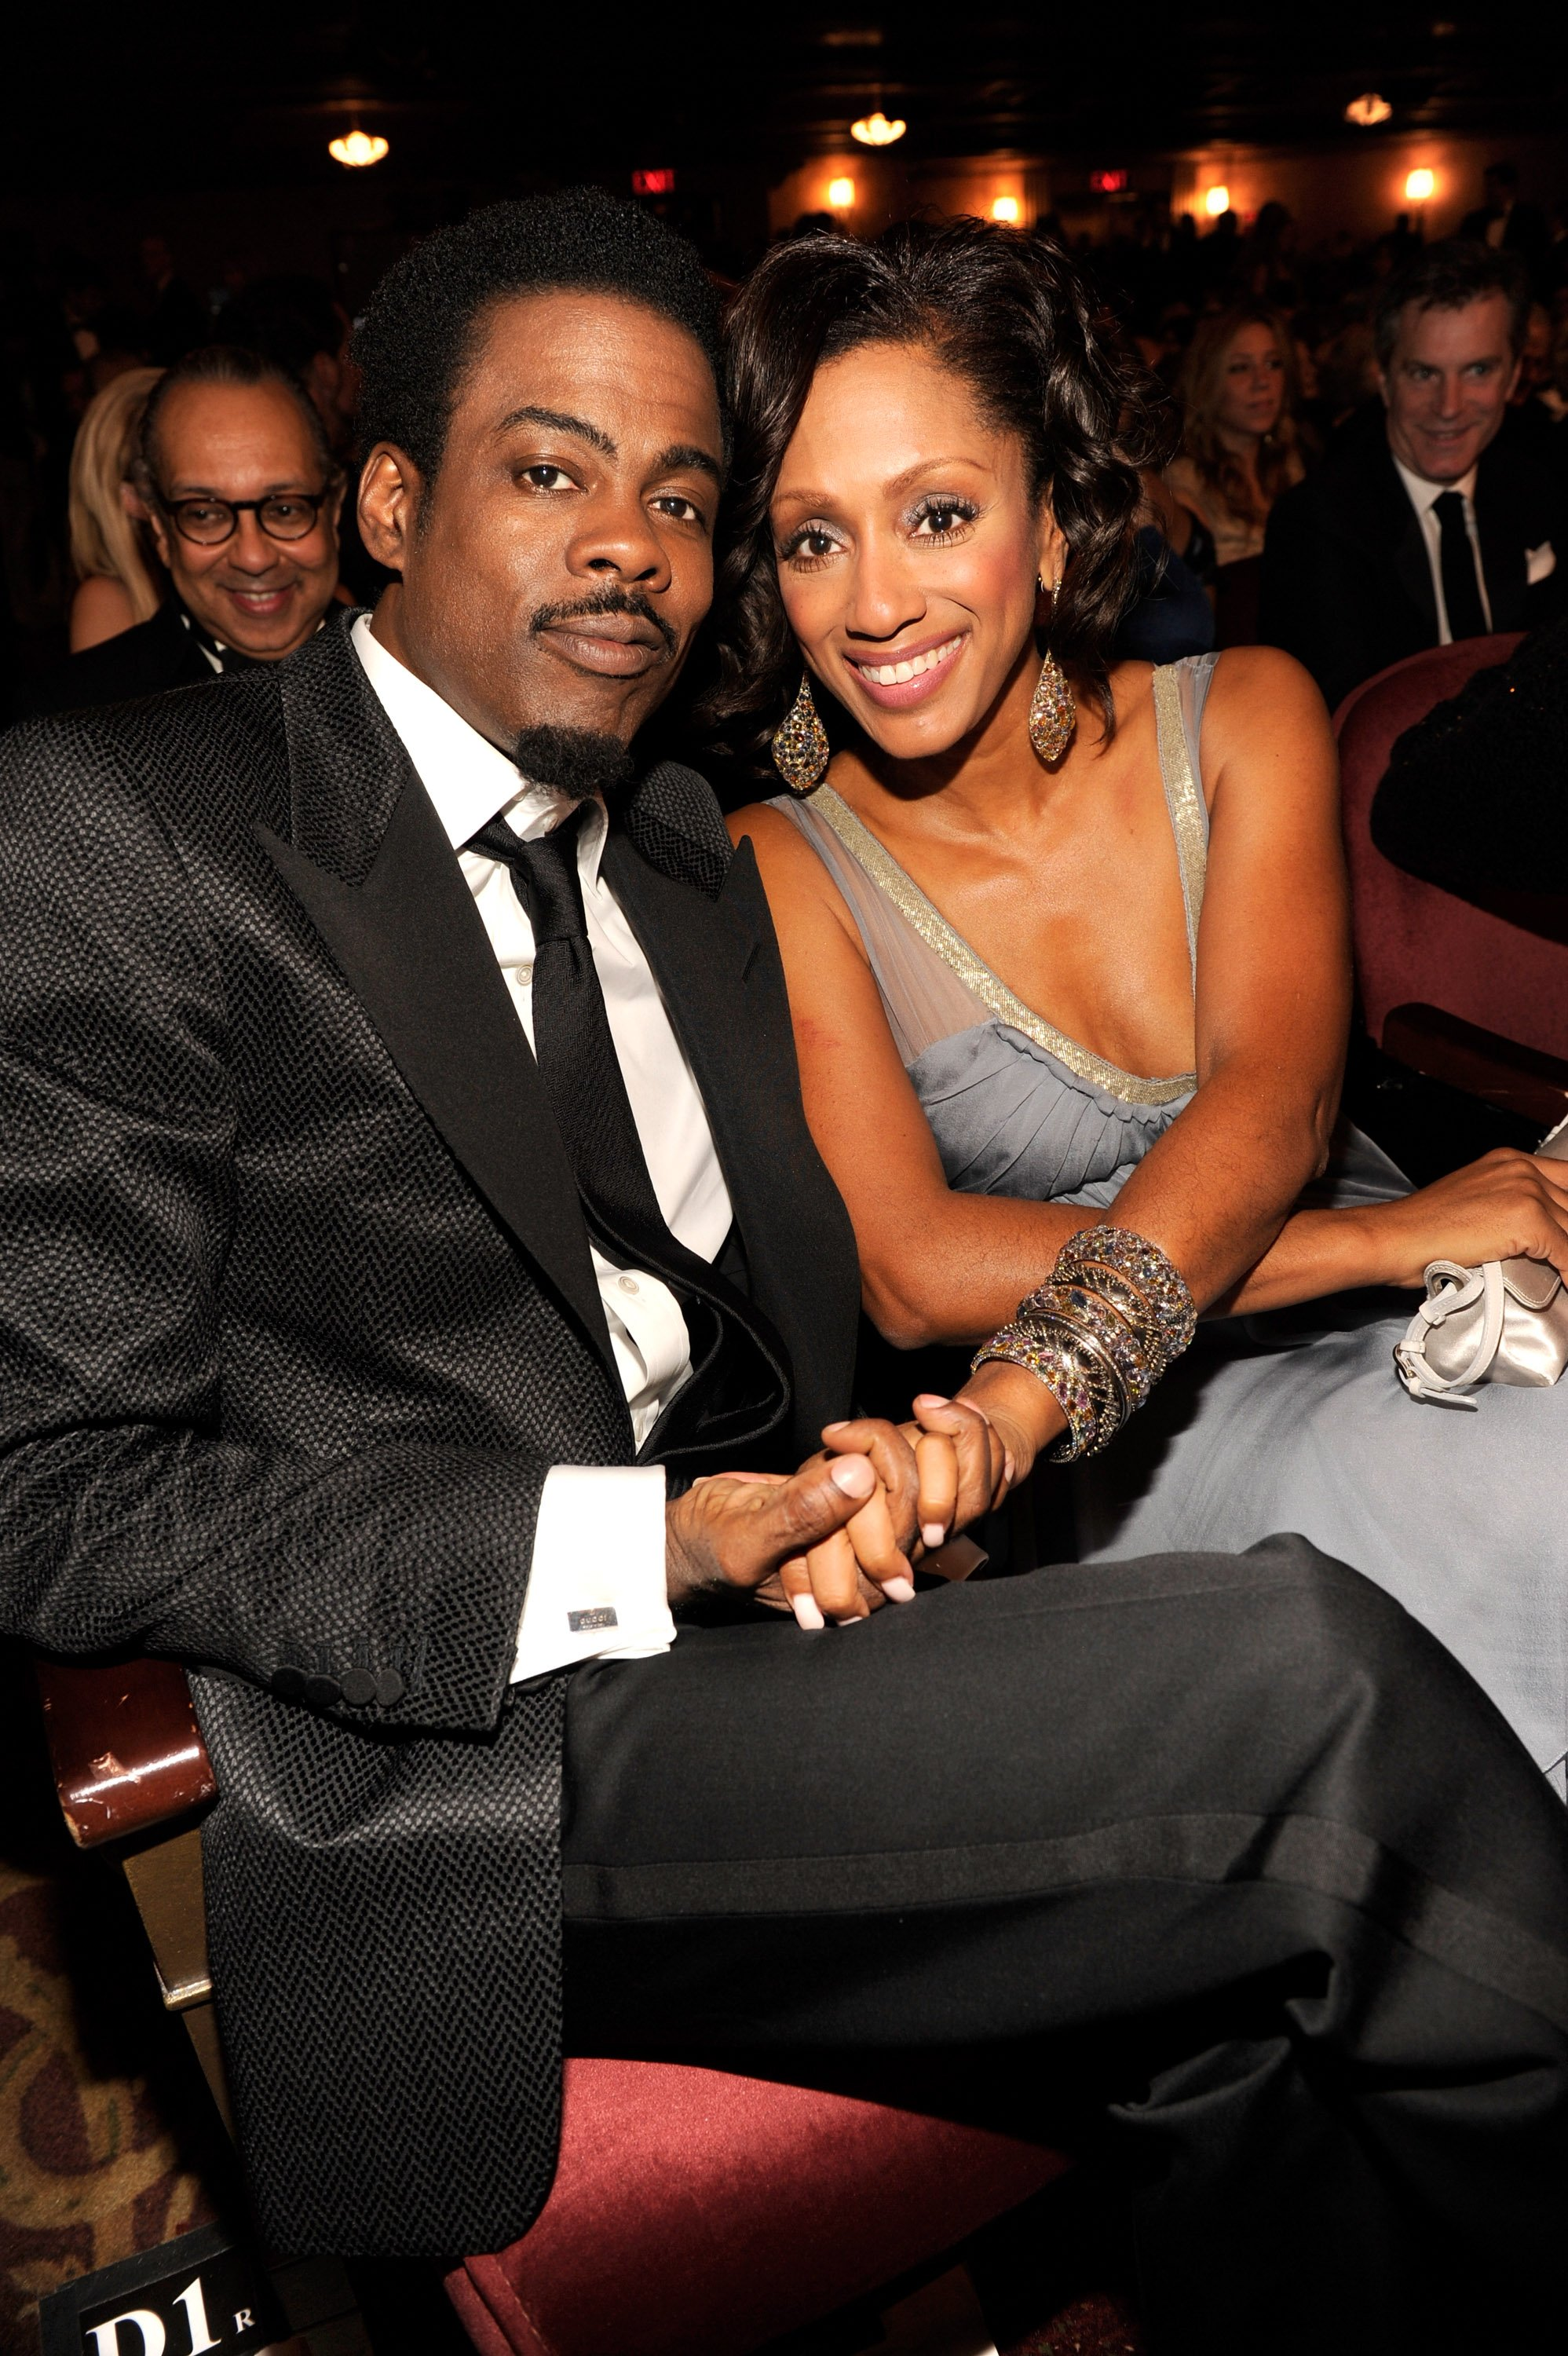 Chris Rock and Malaak Compton Rock attend the 65th Annual Tony Awards on June 12, 2011 in New York City.   Source: Getty Images